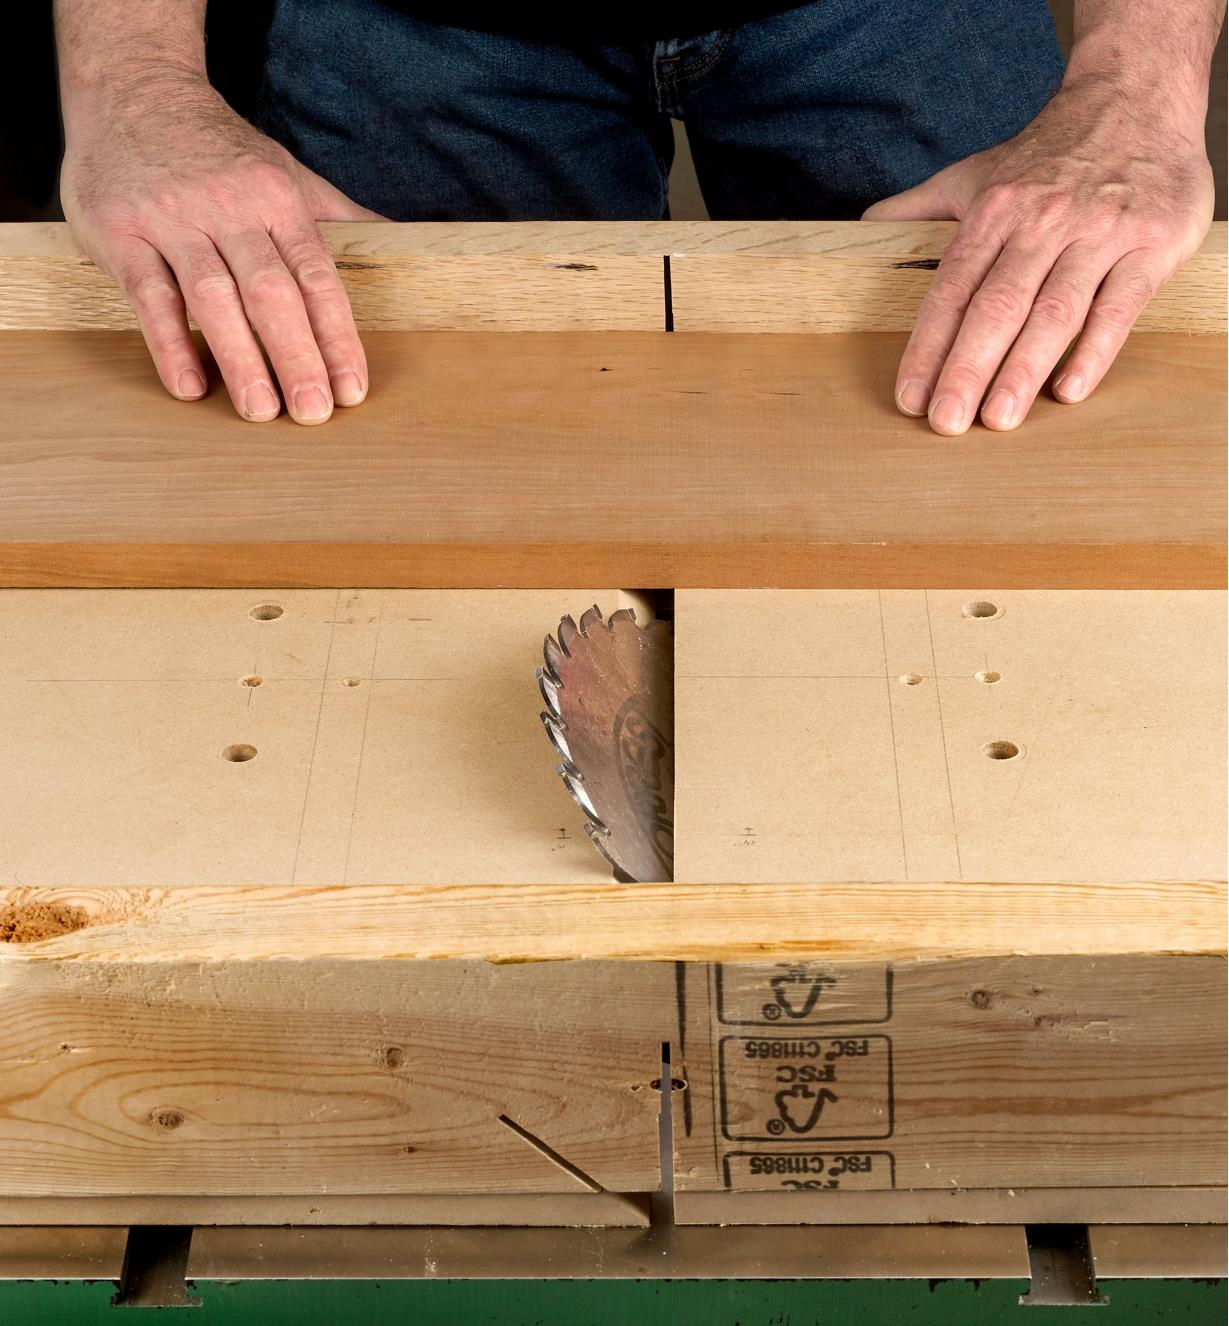 Cutting stock on a table saw using a large sled made with two Zeroplay miter bars